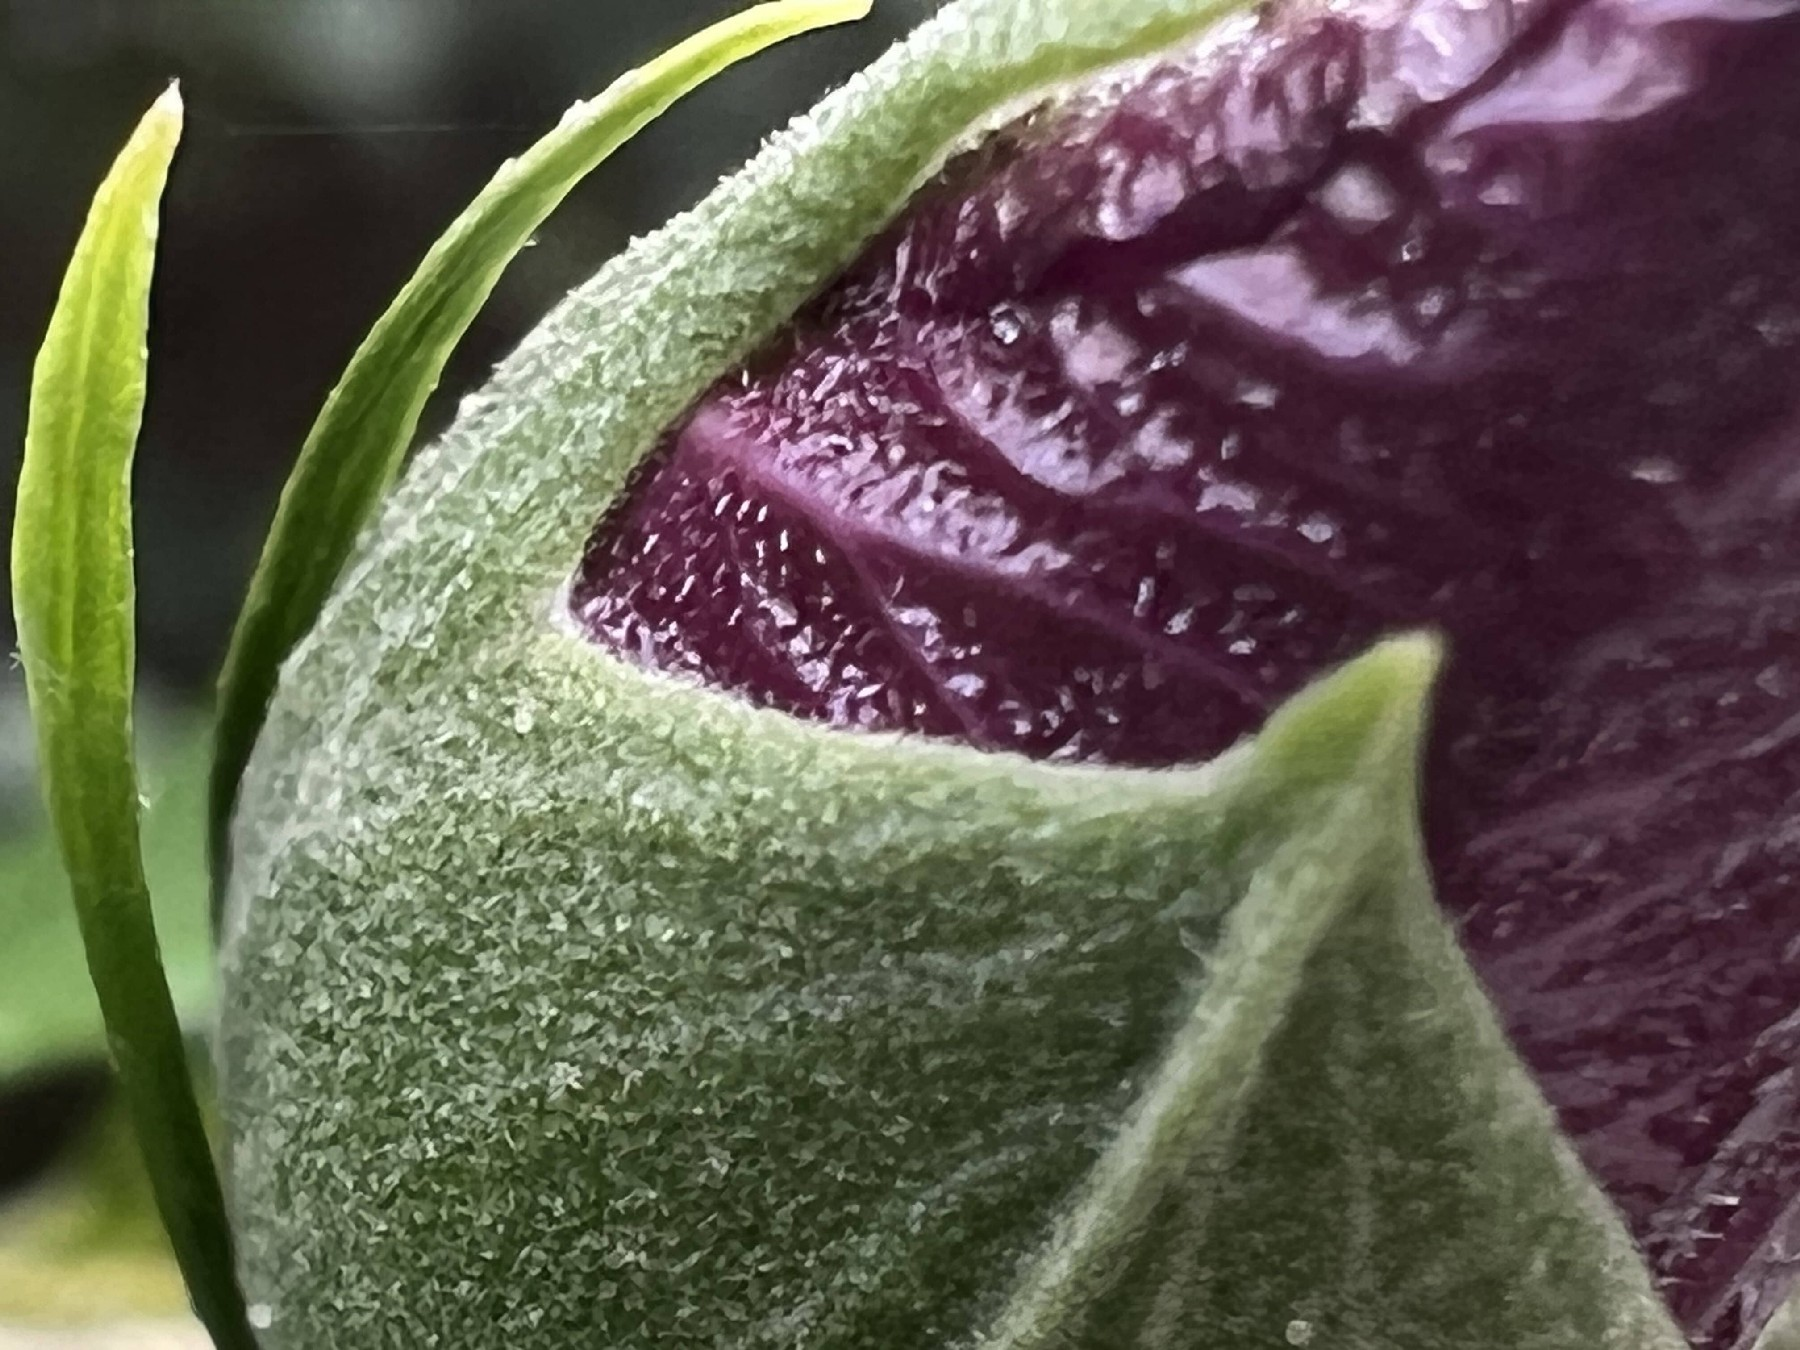 <p>iPhone 13 Pro camera sample: Macro photo of a purple flower bud showing tiny hairs.</p>